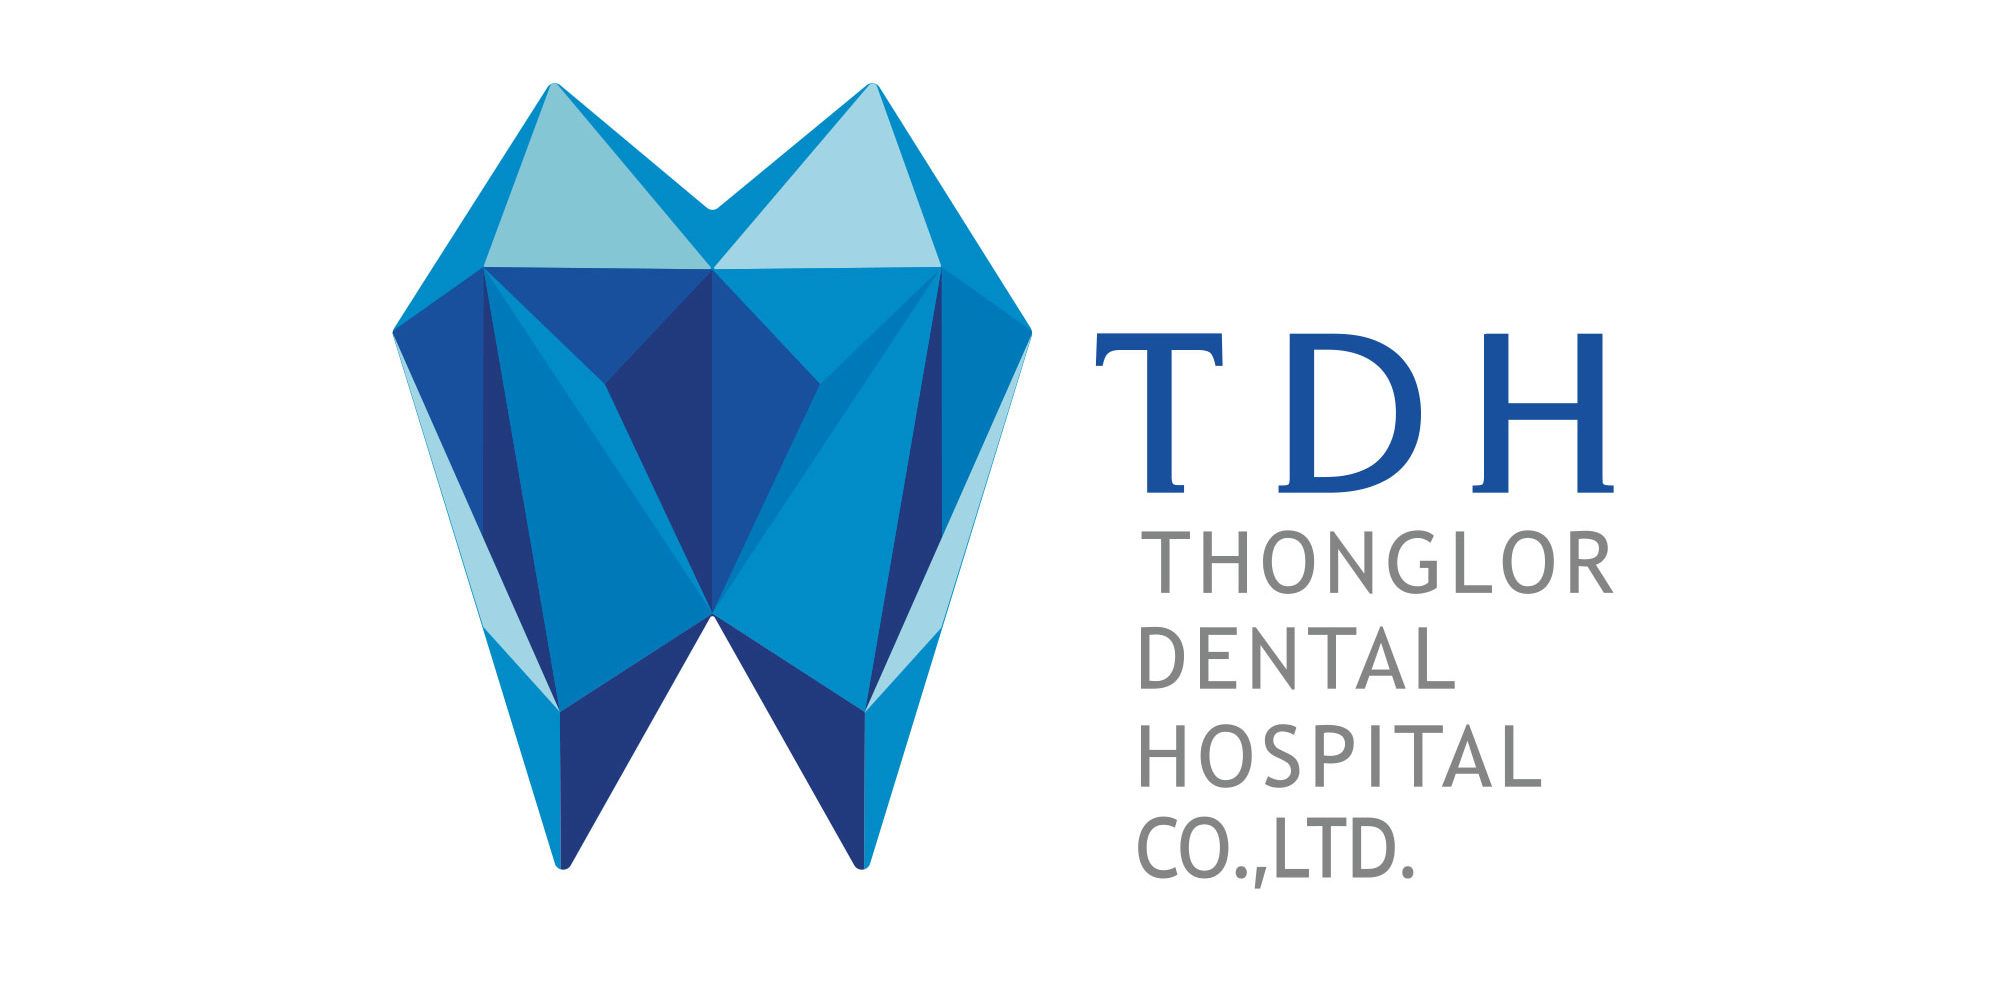 Thonglordentalhospital Co.,Ltd.